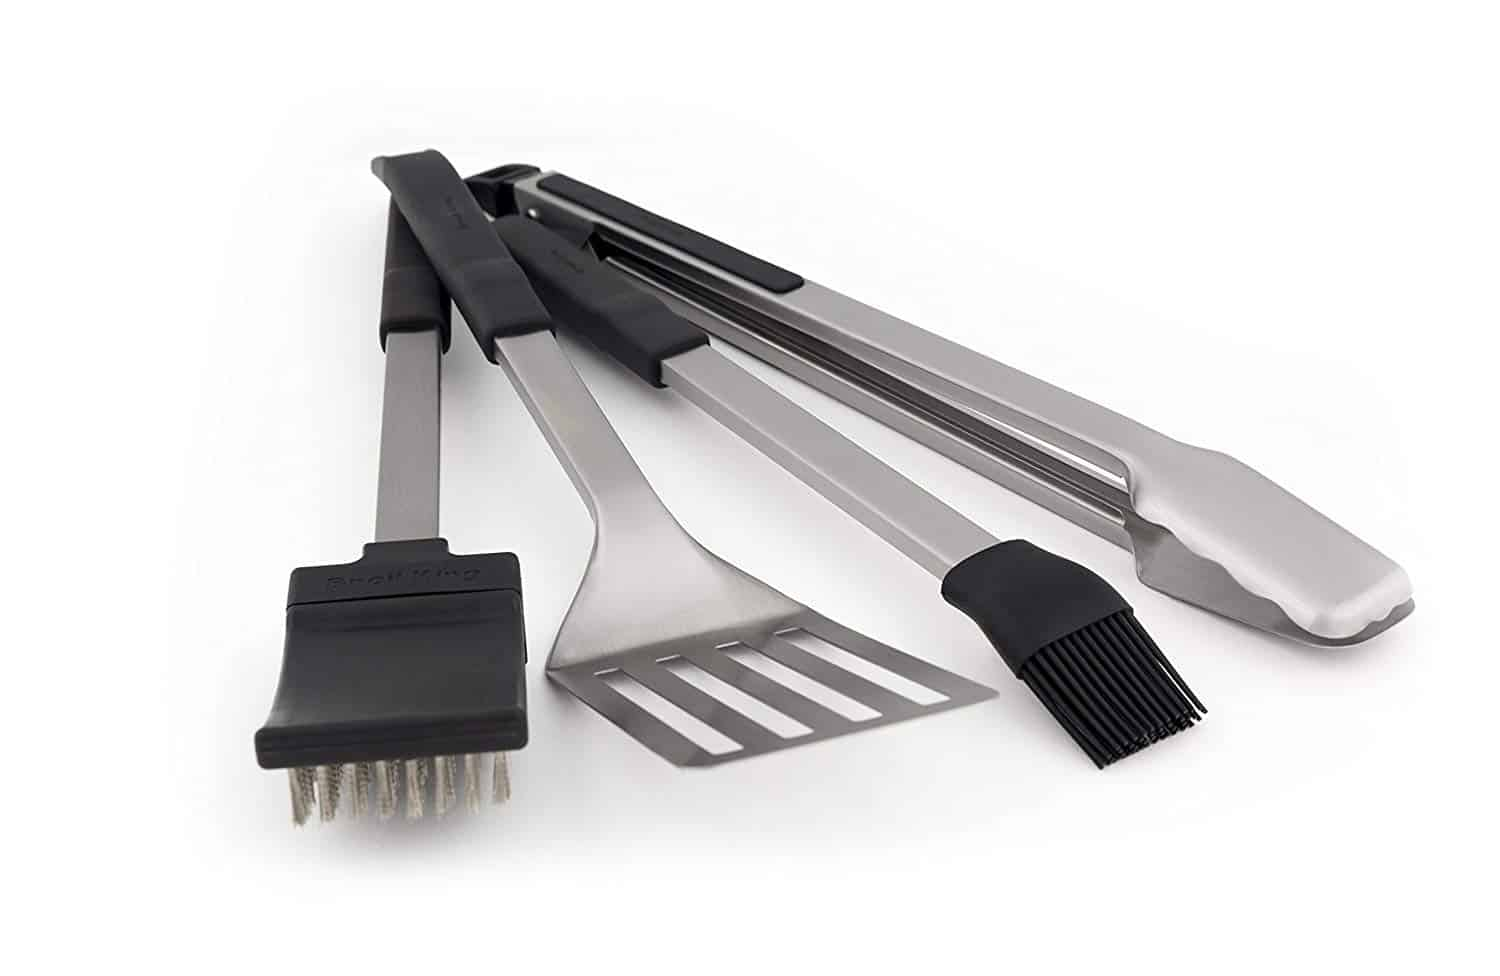 Broil King Baron Series Toolset - BBQ Accessories For Sale Dublin Ireland